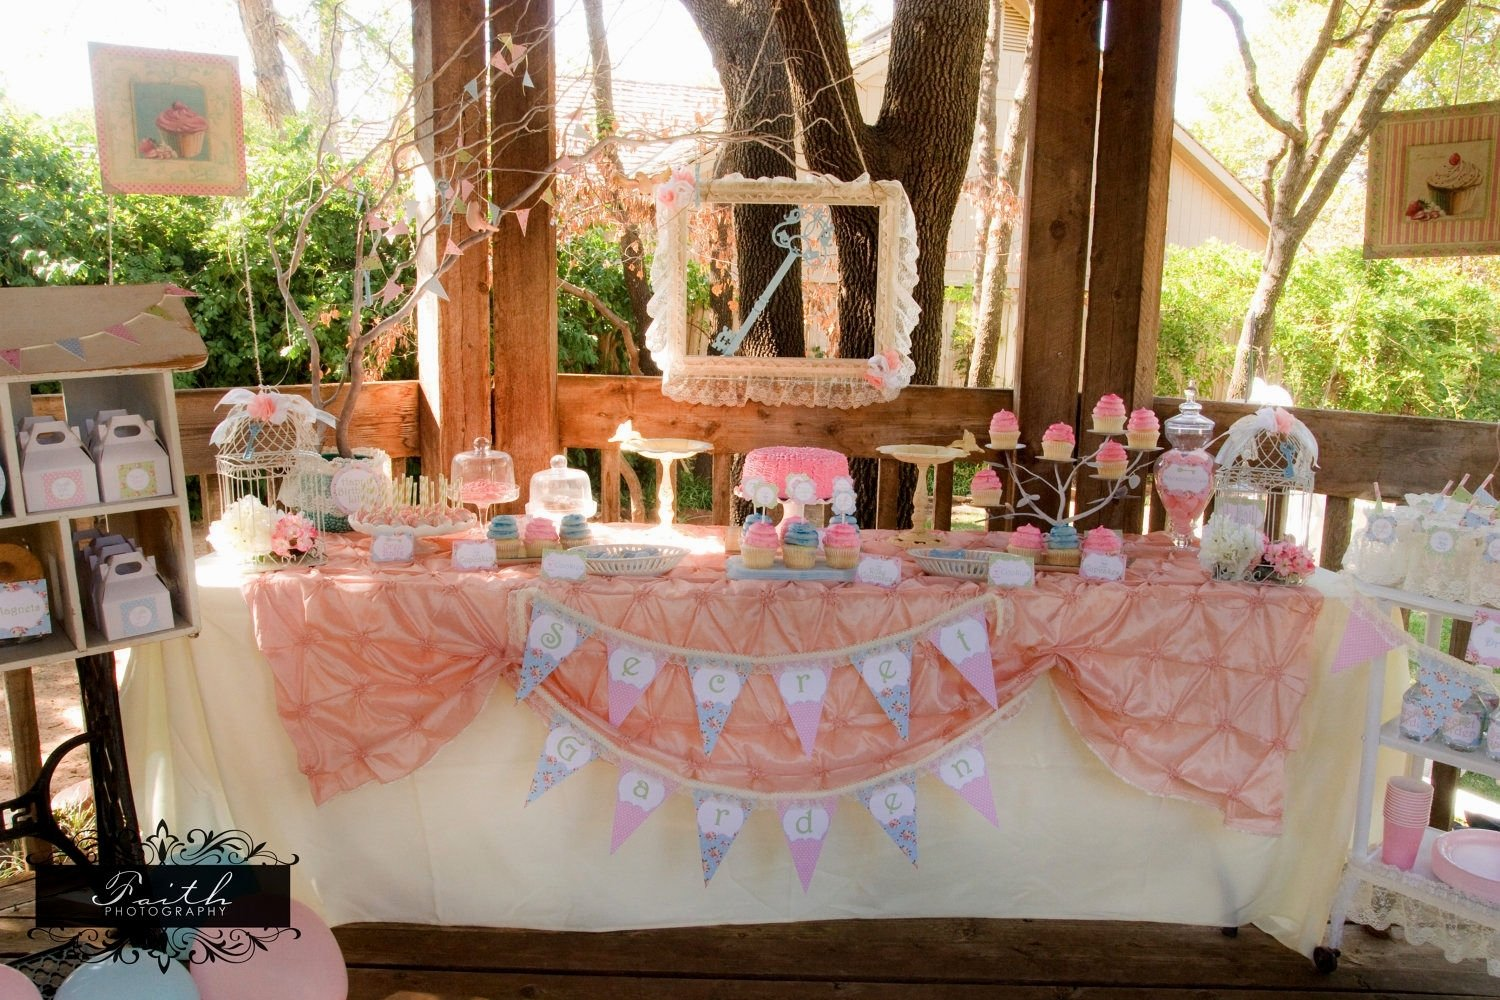 10 Unique Birthday Party Ideas For Adults tea party birthday party ideas for adults decorating of party 2020